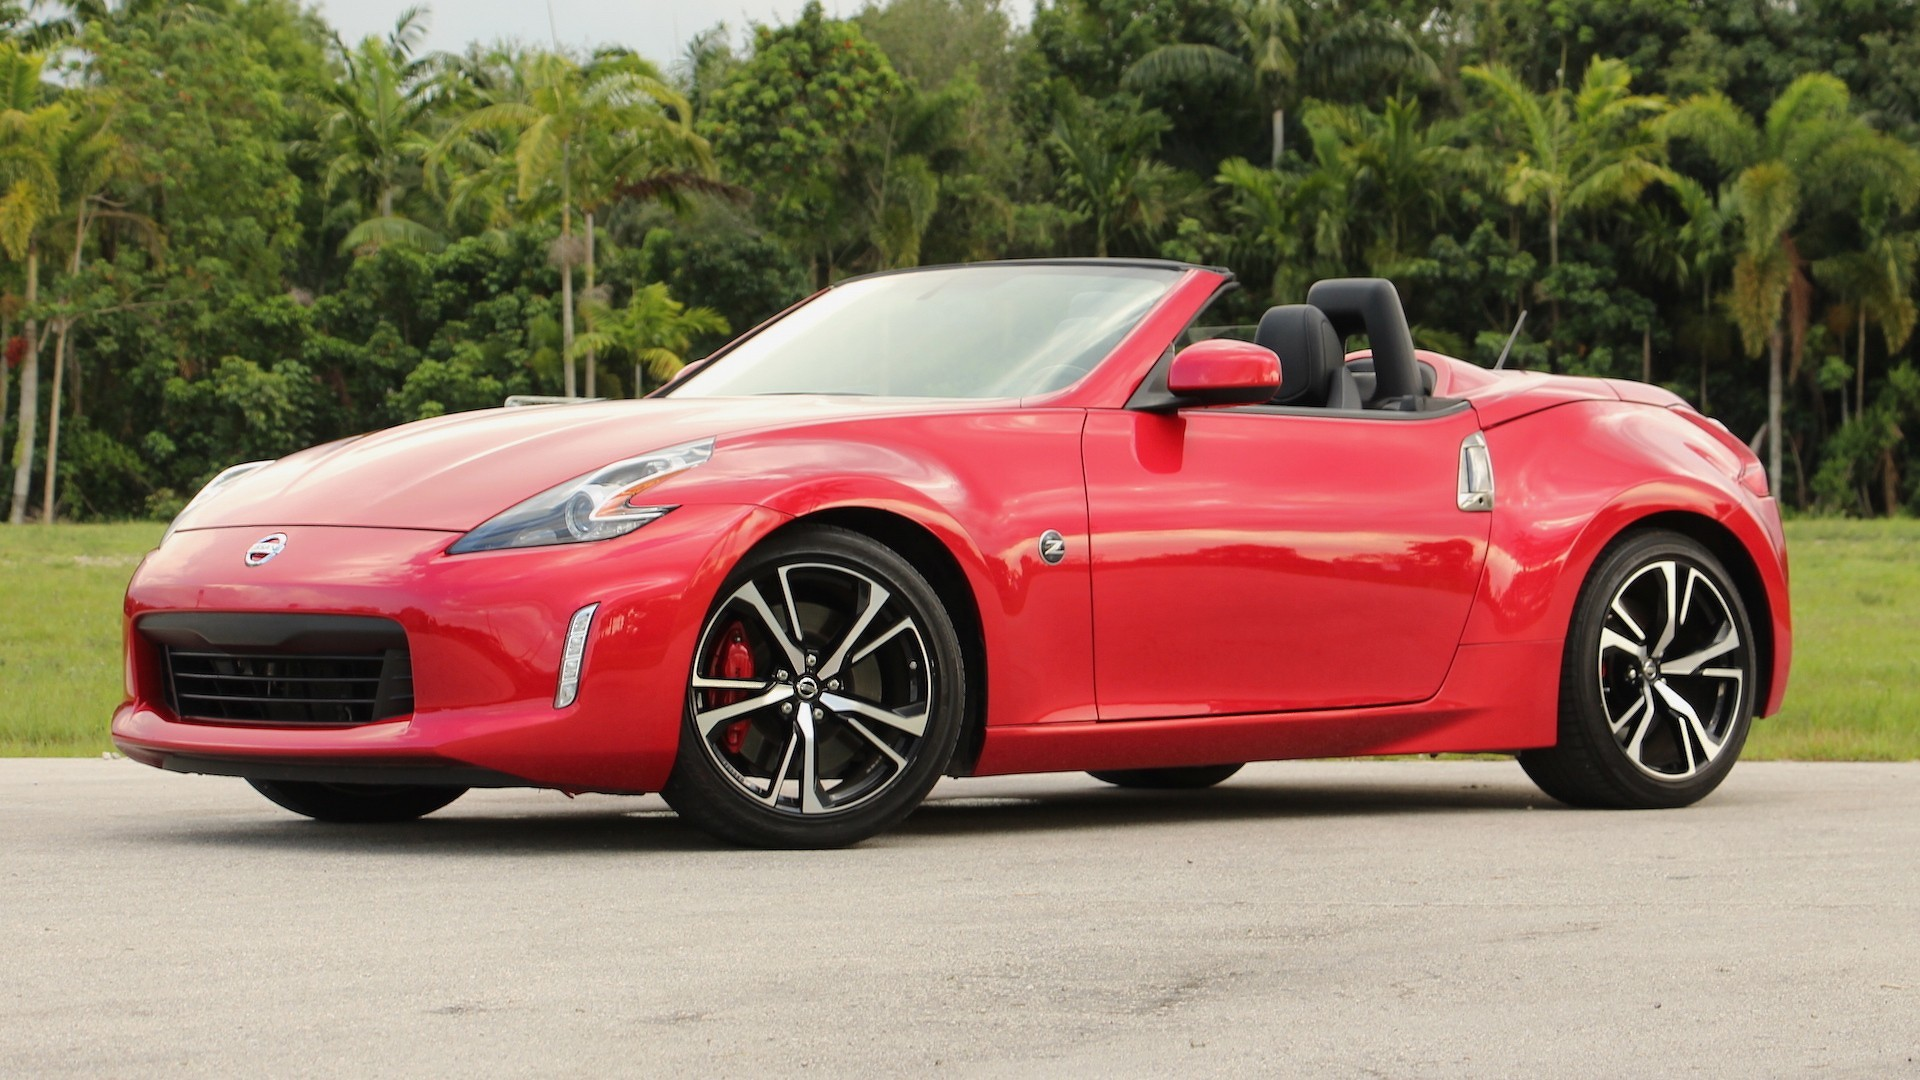 2018 Nissan 370z Roadster Review Ready For Retirement